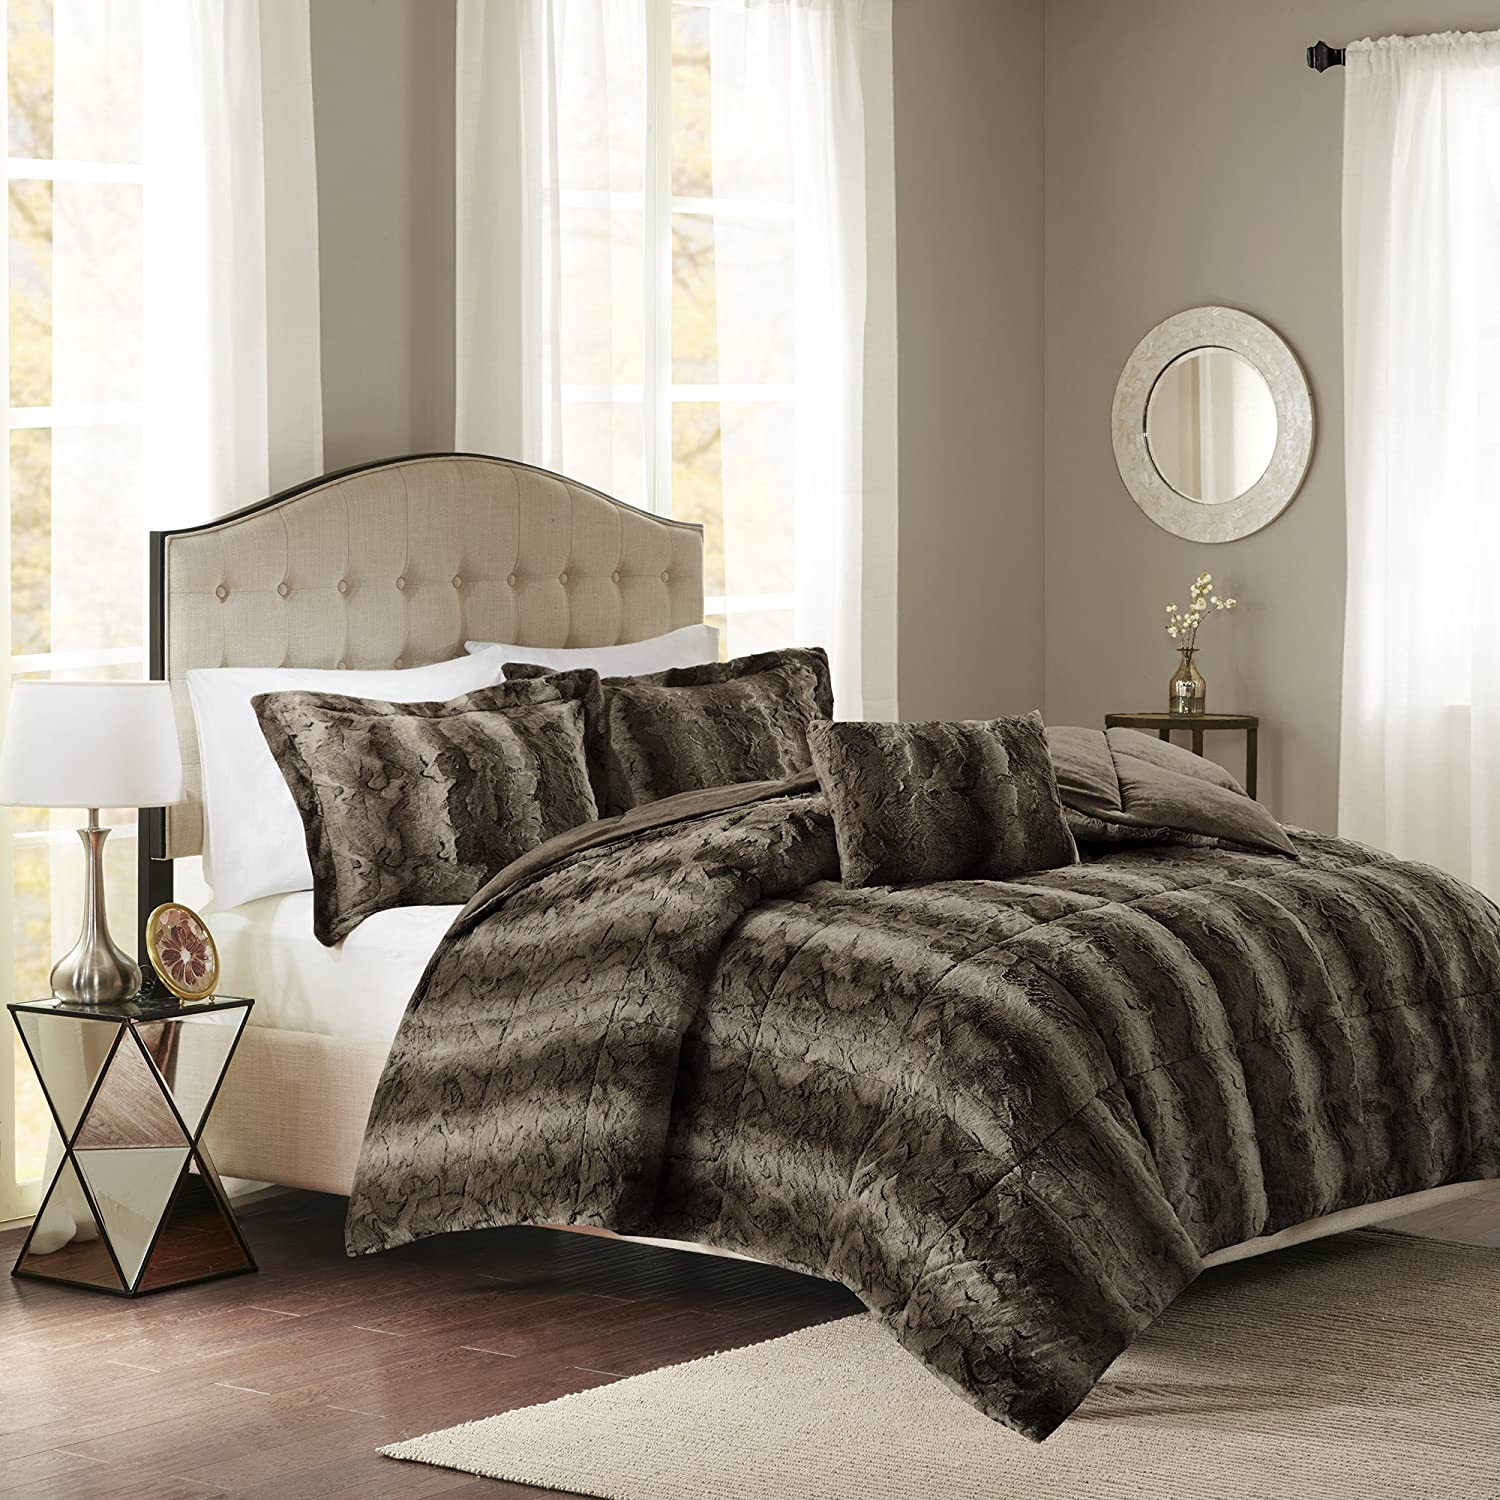 Madison Park Zuri Full/Queen Size Bed Comforter Set - Grey, Animal – 4 Pieces Bedding Sets – Faux Fur Bedroom Comforters MP10-3076